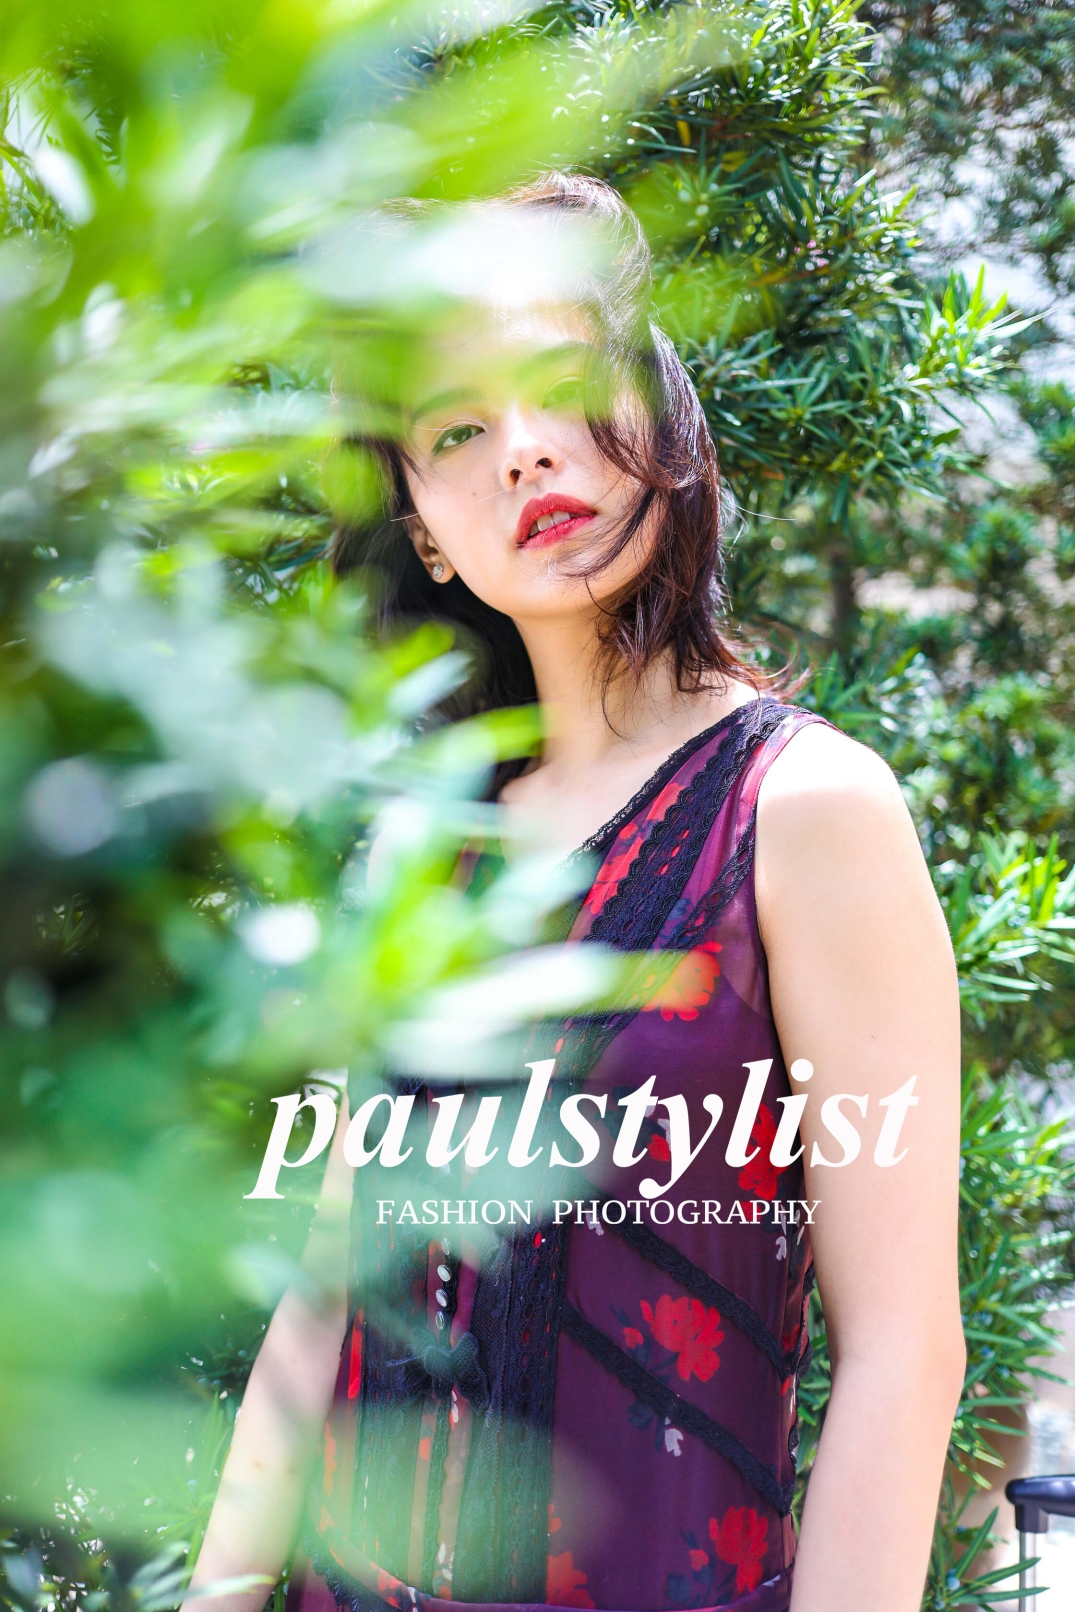 人像攝影_時裝攝影_個人寫真__portrait_paulstylist_fashion_photography_angela-28b